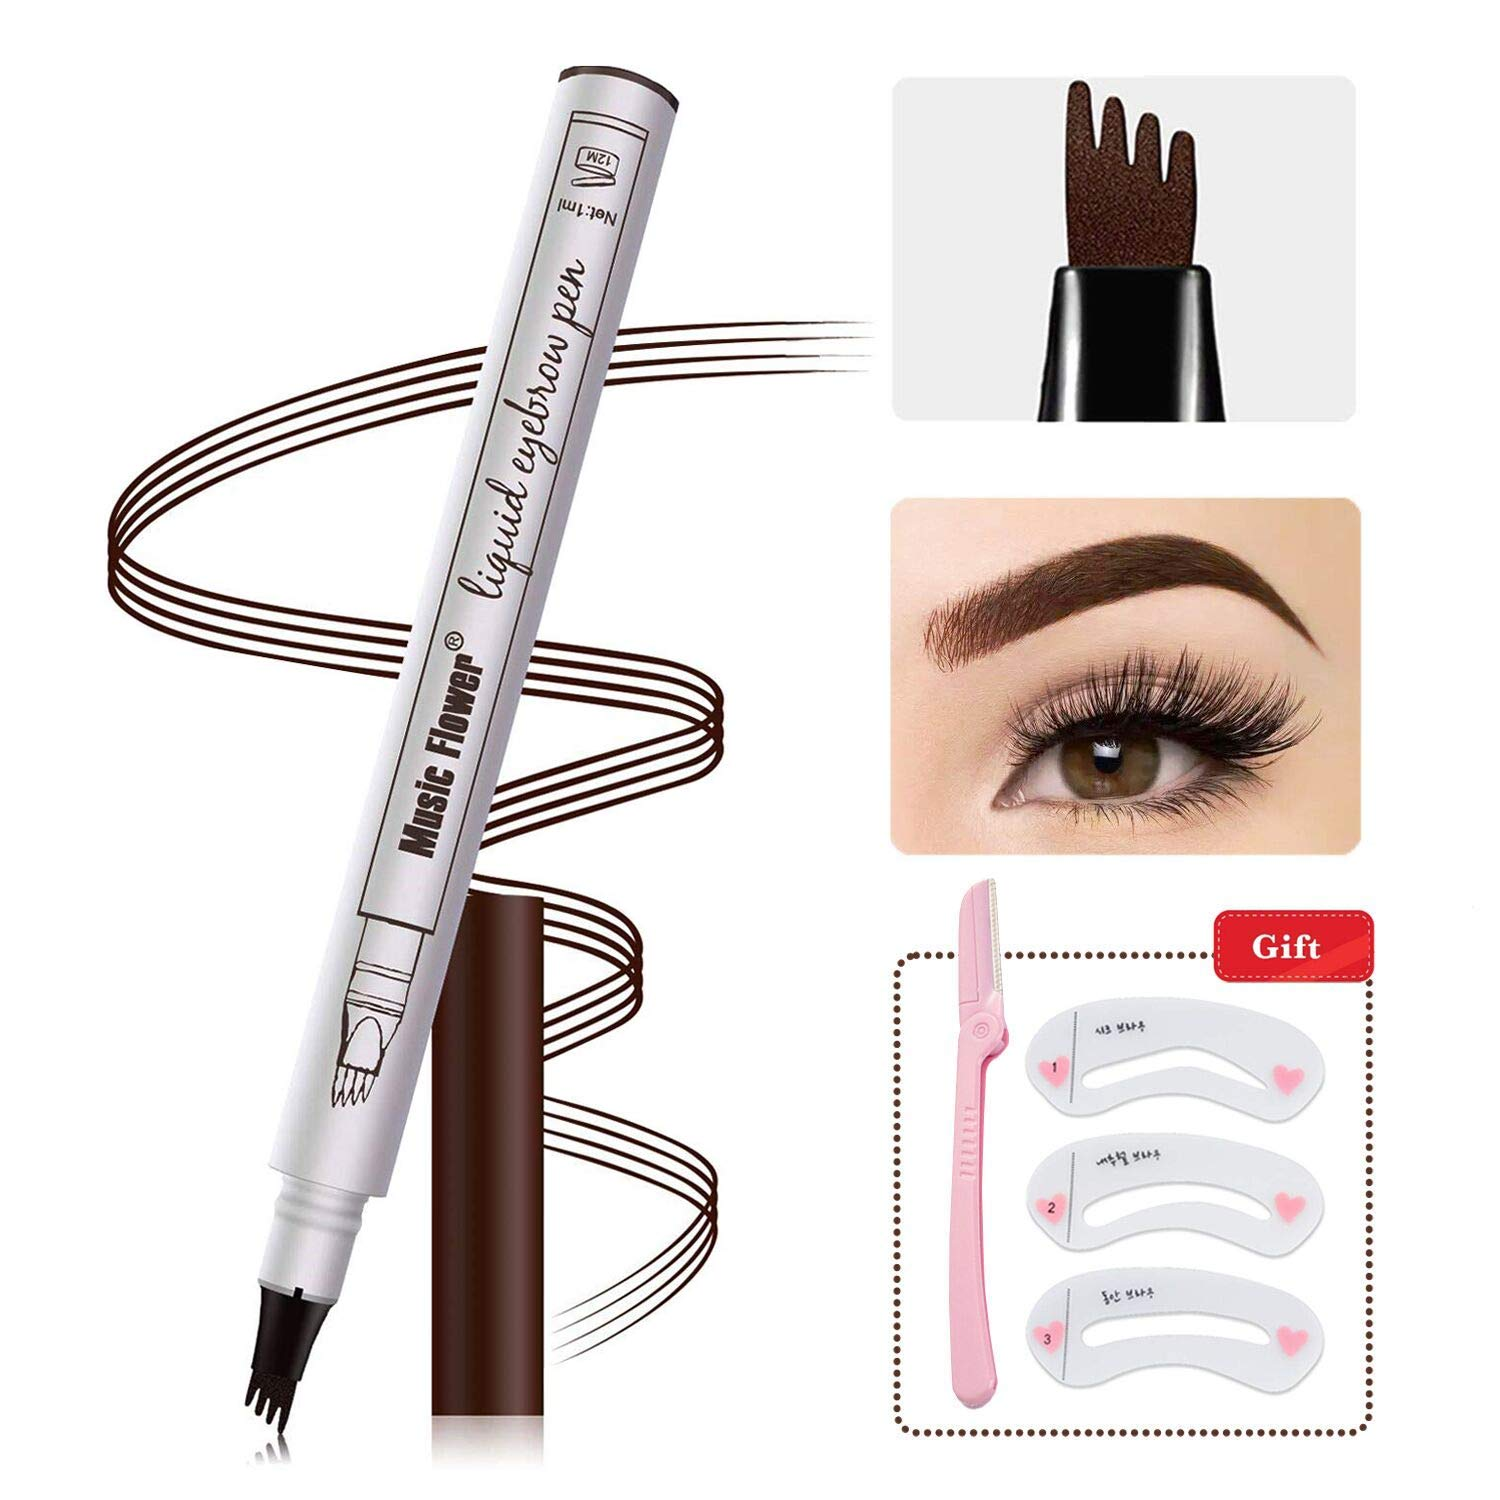 Eyebrow Tattoo Pen,Microblading Eyebrow Pen 4 Points Eyebrown Pen Tat Brow Microblade Eyebrow Pencil Waterproof & Smudge-Proof With Four Micro-Fork Tips Applicator for Daily Natural Eye Makeup